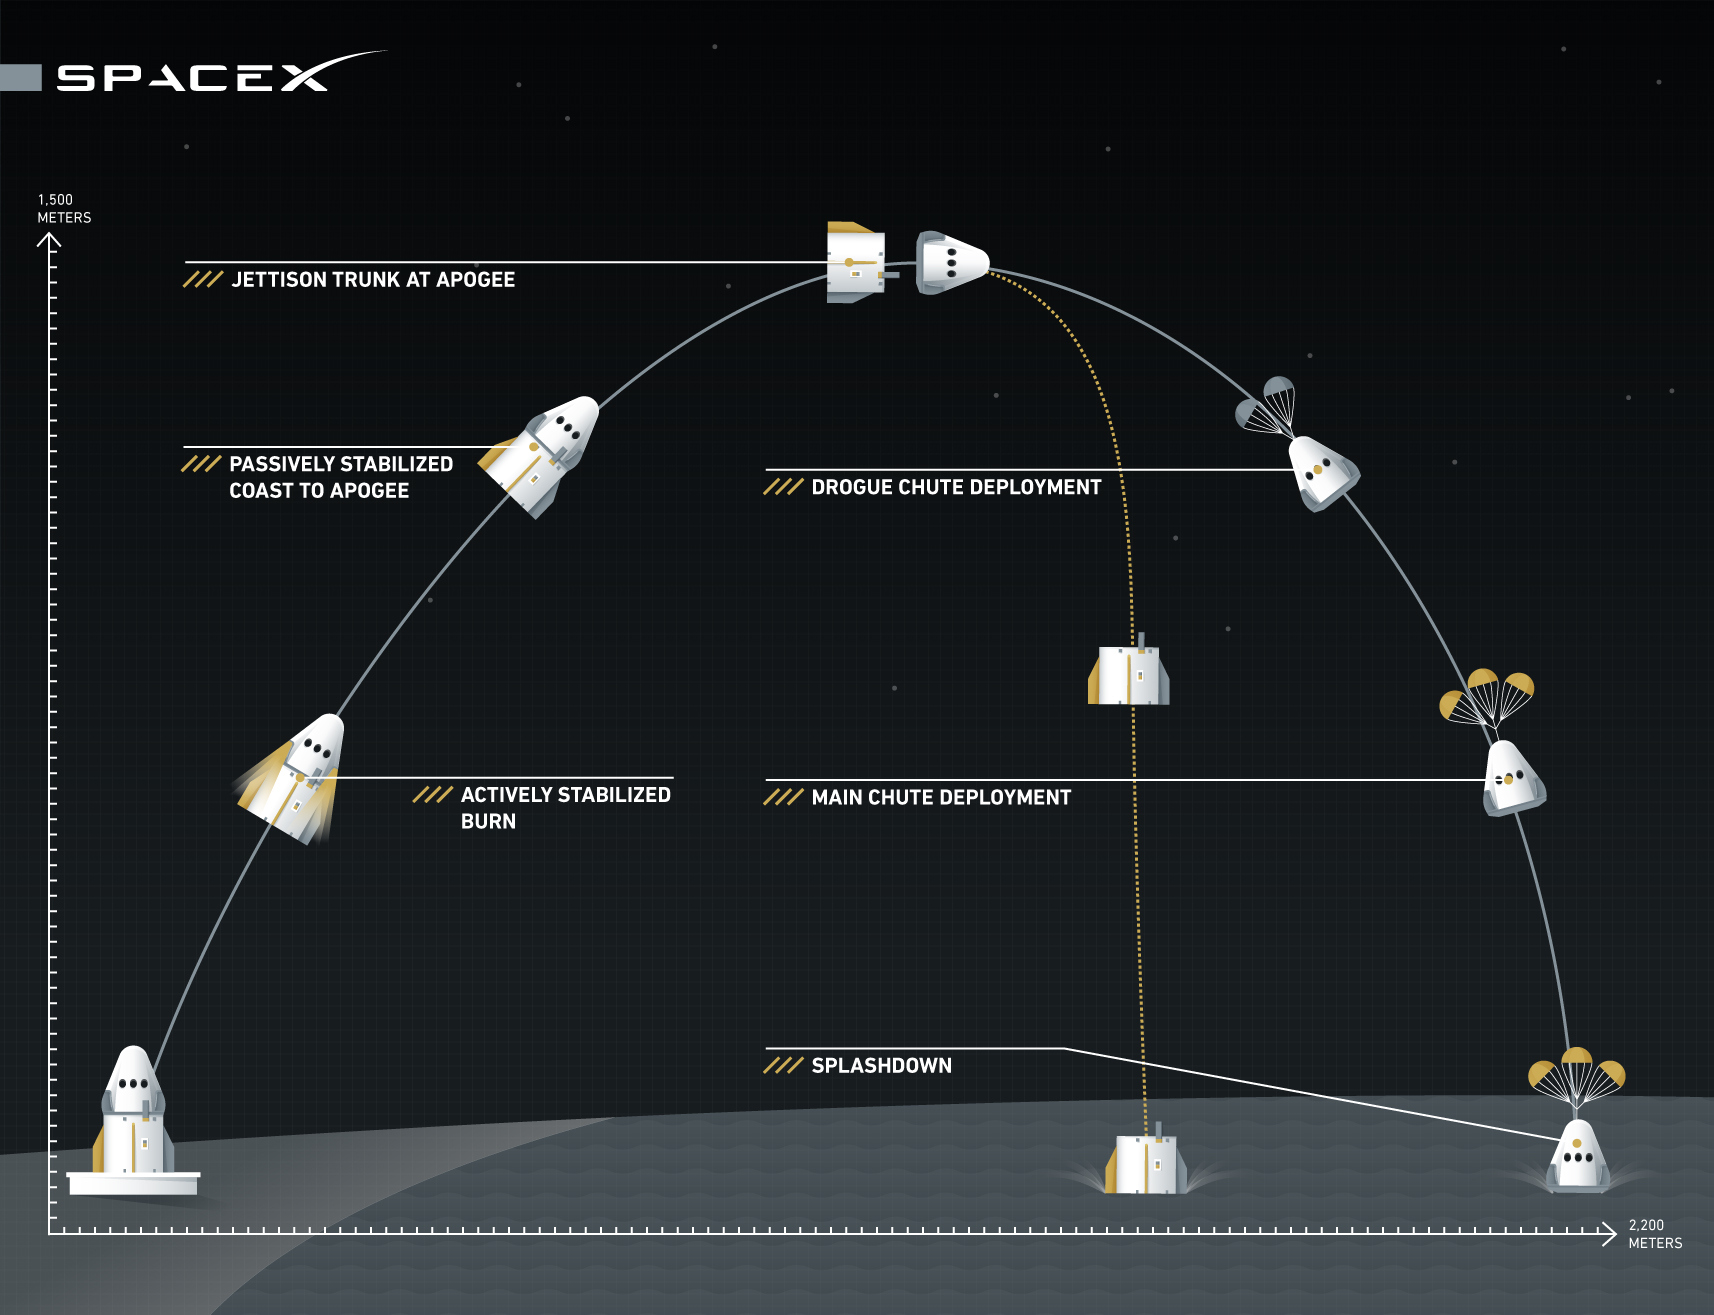 graphic illustrates the spacex pad abort test trajectory and sequence of events planned for may 6 2015 from cape canaveral launch complex 40